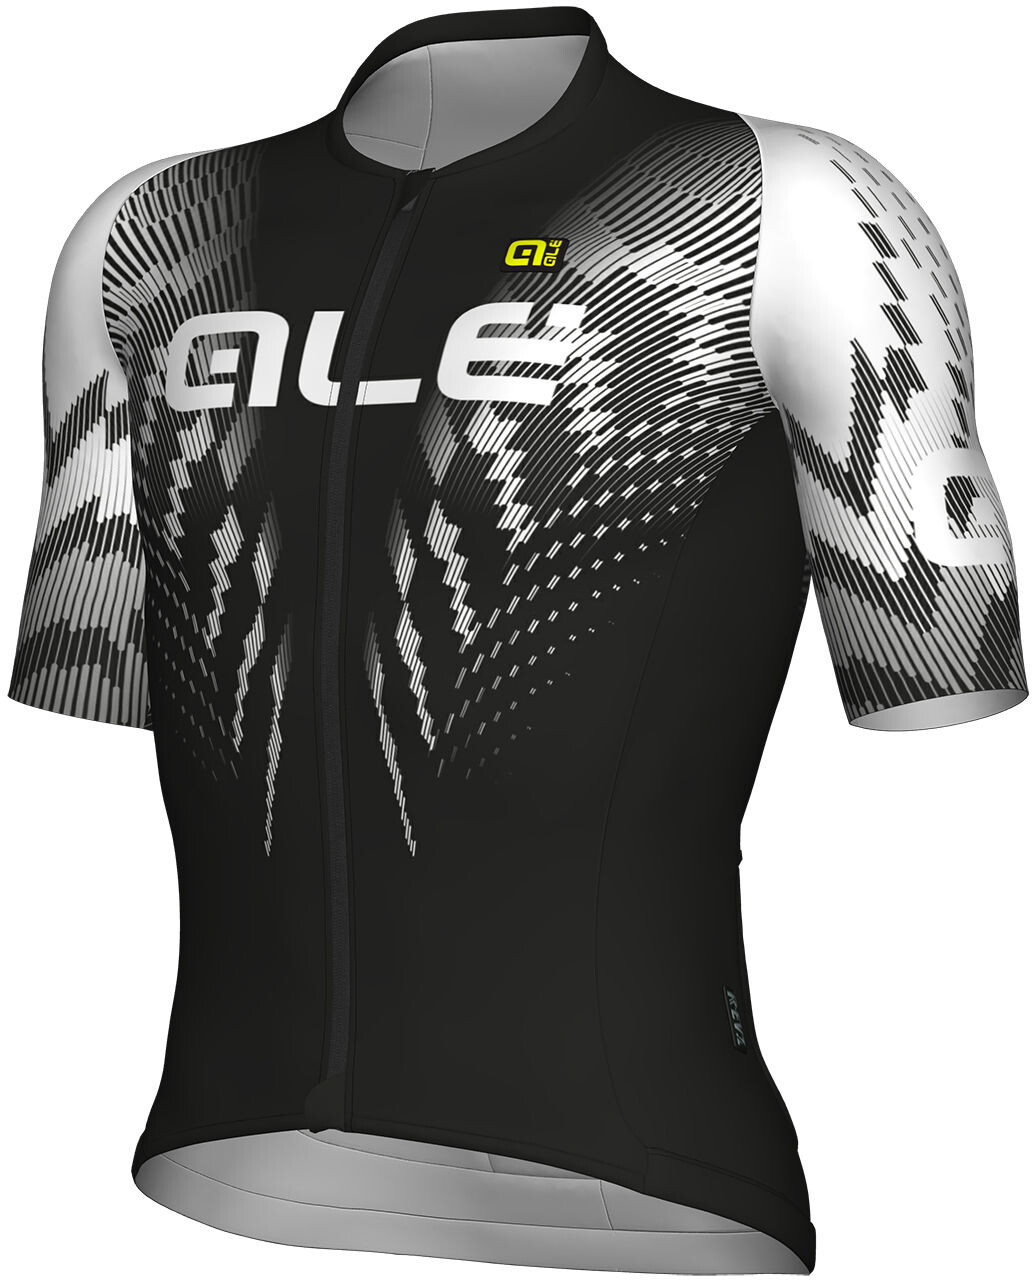 Alé Cycling R-EV1 Pro Race Bike Jersey Shortsleeve Men white black ... 2ee2db8d4